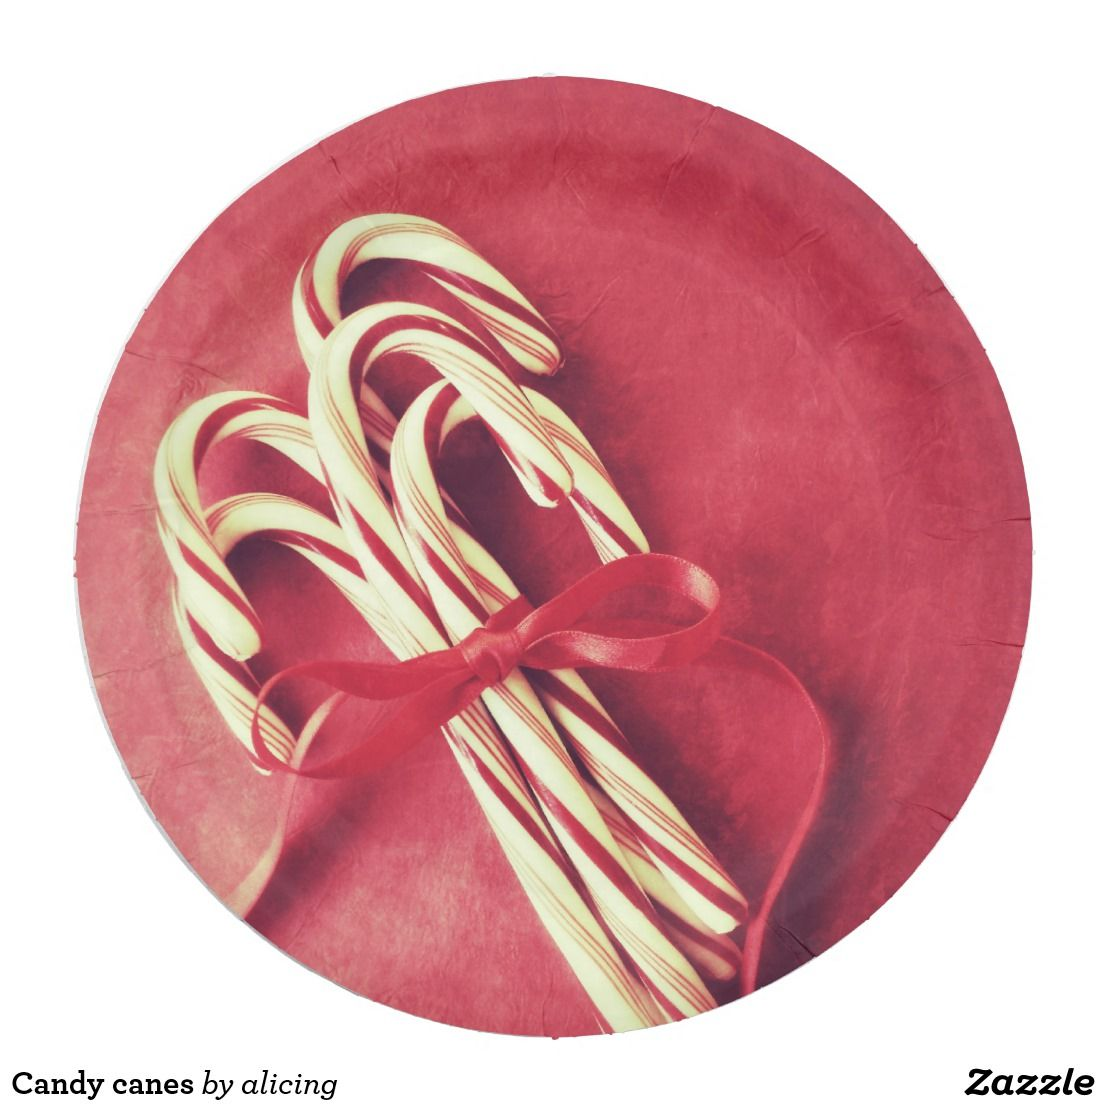 Candy canes  sc 1 st  Pinterest & Candy canes paper plate | Candy canes